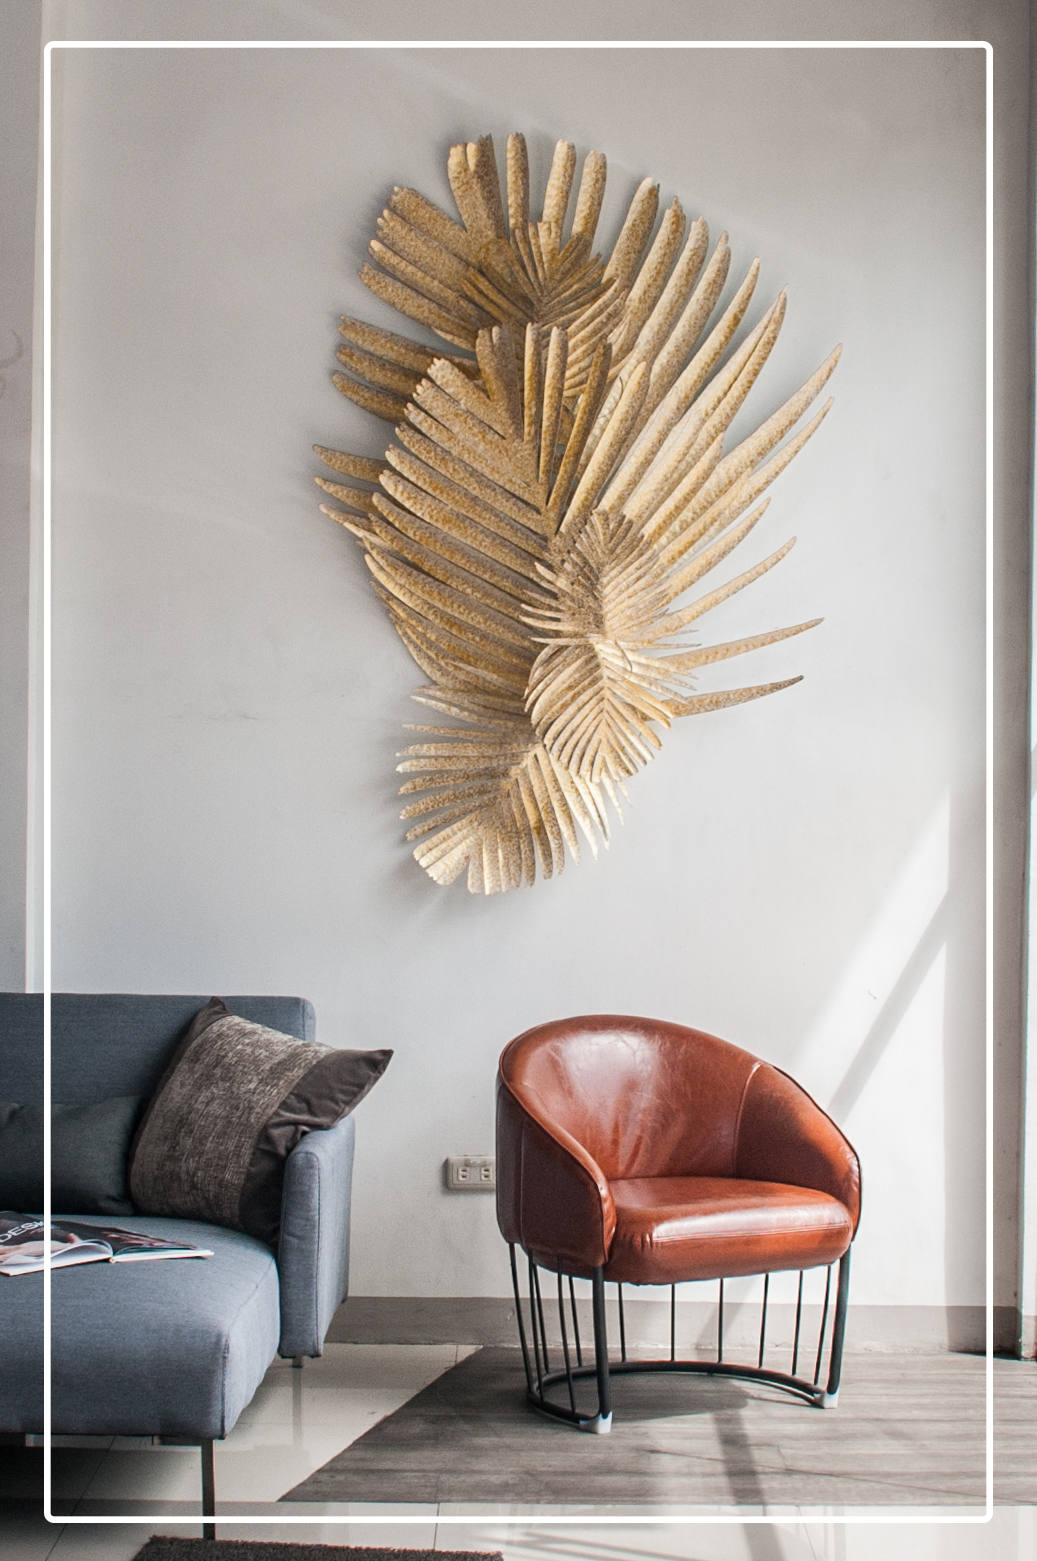 Wall Art And Decor For Living Room: Home Central Philippines